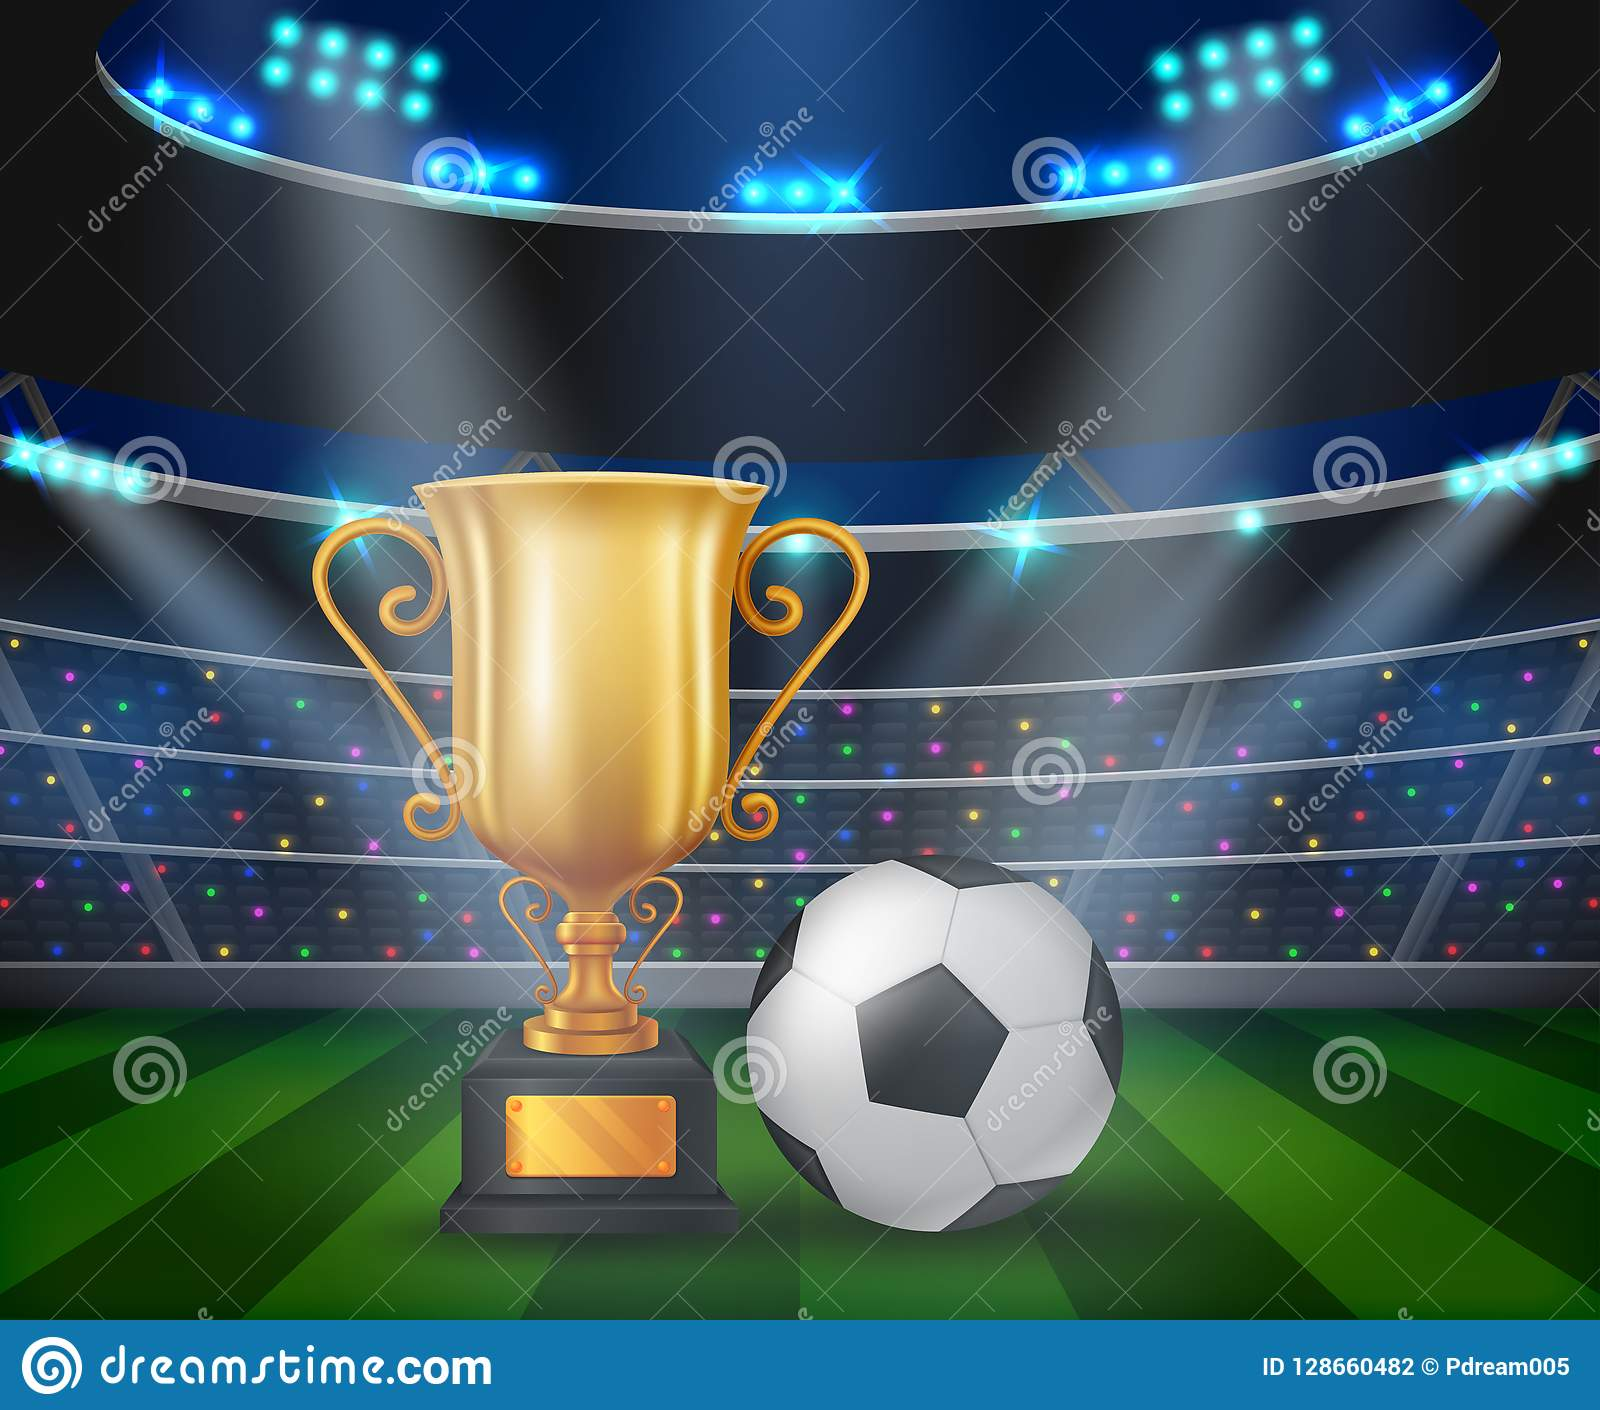 trophy and soccer ball on the podium with a football stadium background stock vector illustration of success prize 128660482 https www dreamstime com trophy soccer ball podium football stadium background illustration image128660482